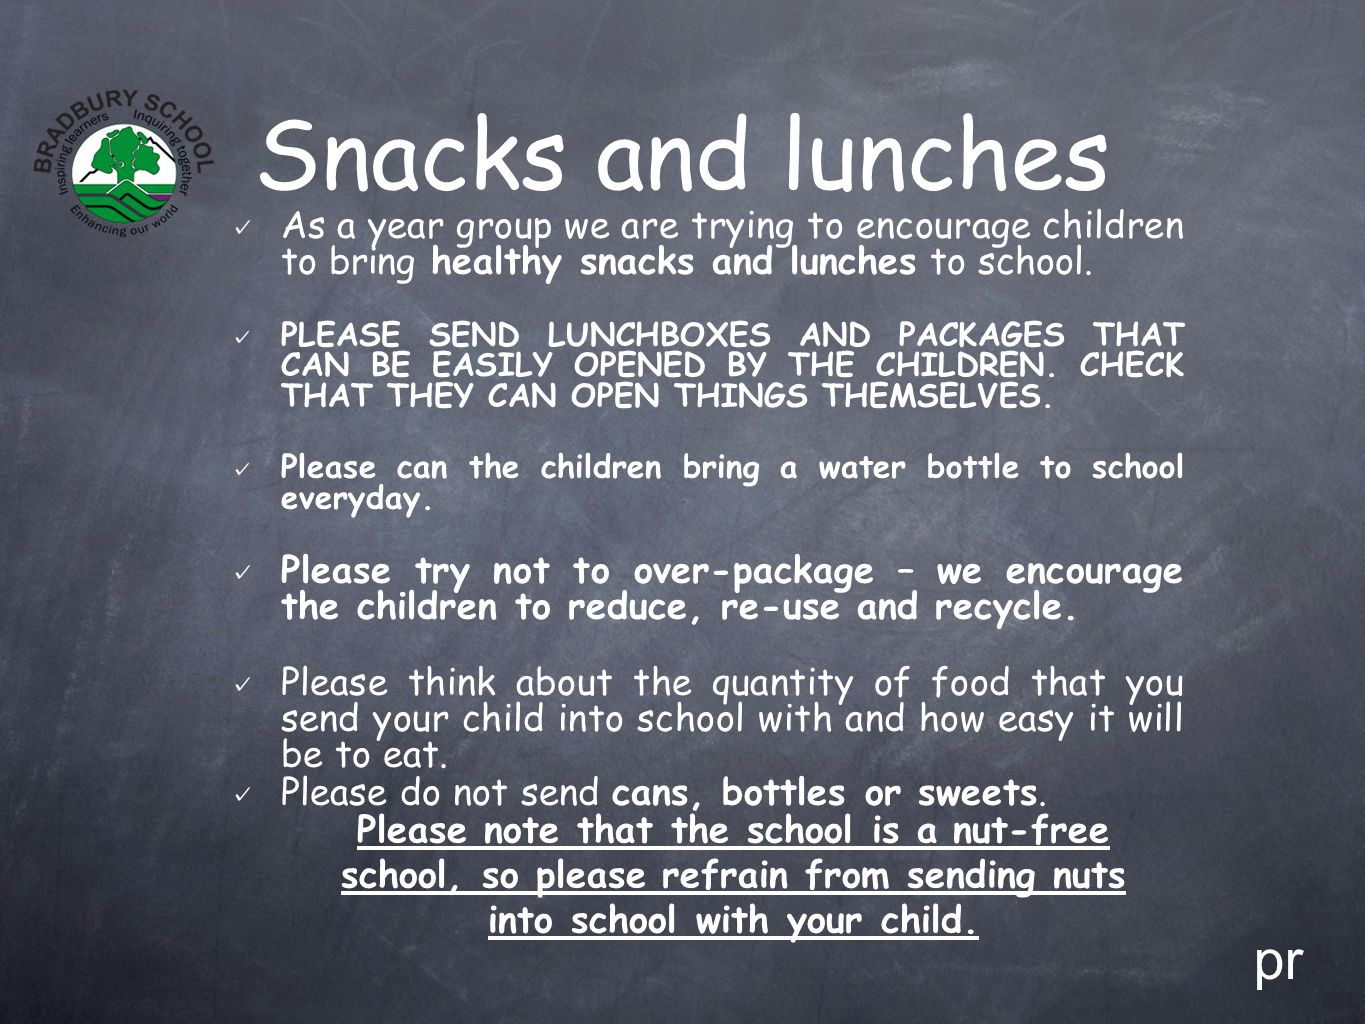 Snacks and lunches As a year group we are trying to encourage children to bring healthy snacks and lunches to school. PLEASE SEND LUNCHBOXES AND PACKA